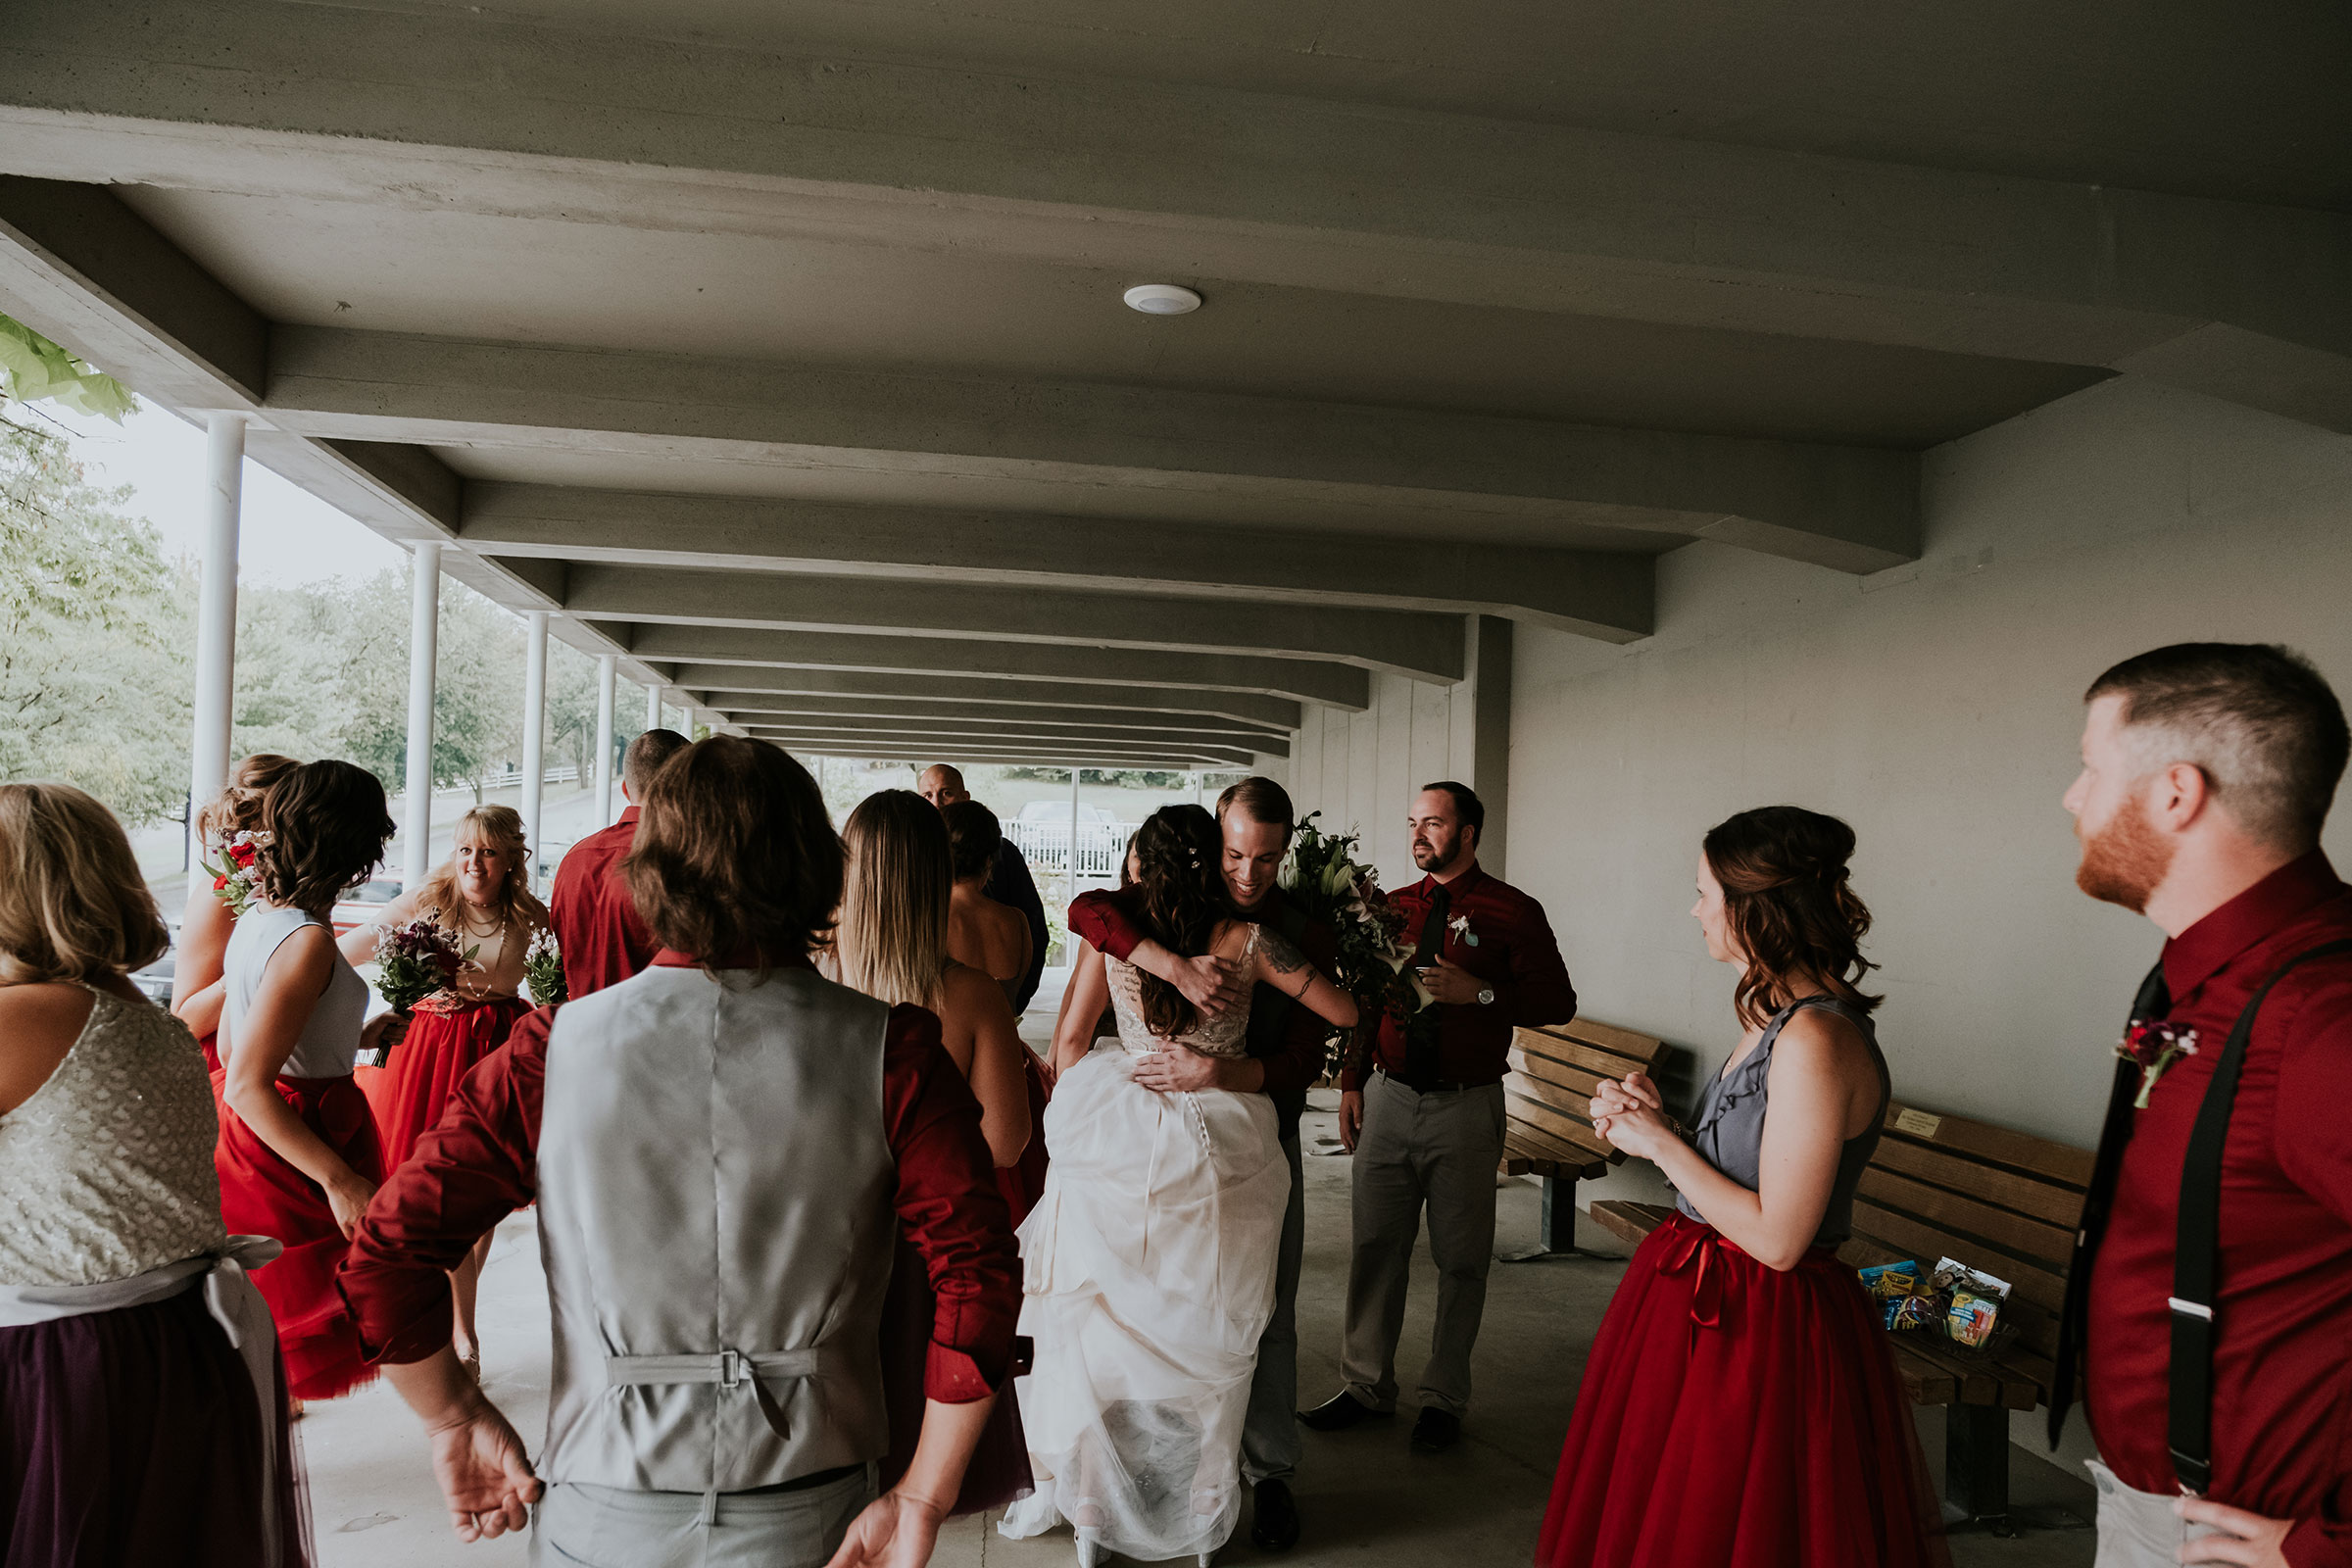 wedding-party-hugging-after-ceremony-pella-plaza-desmoines-iowa-raelyn-ramey-photography.jpg